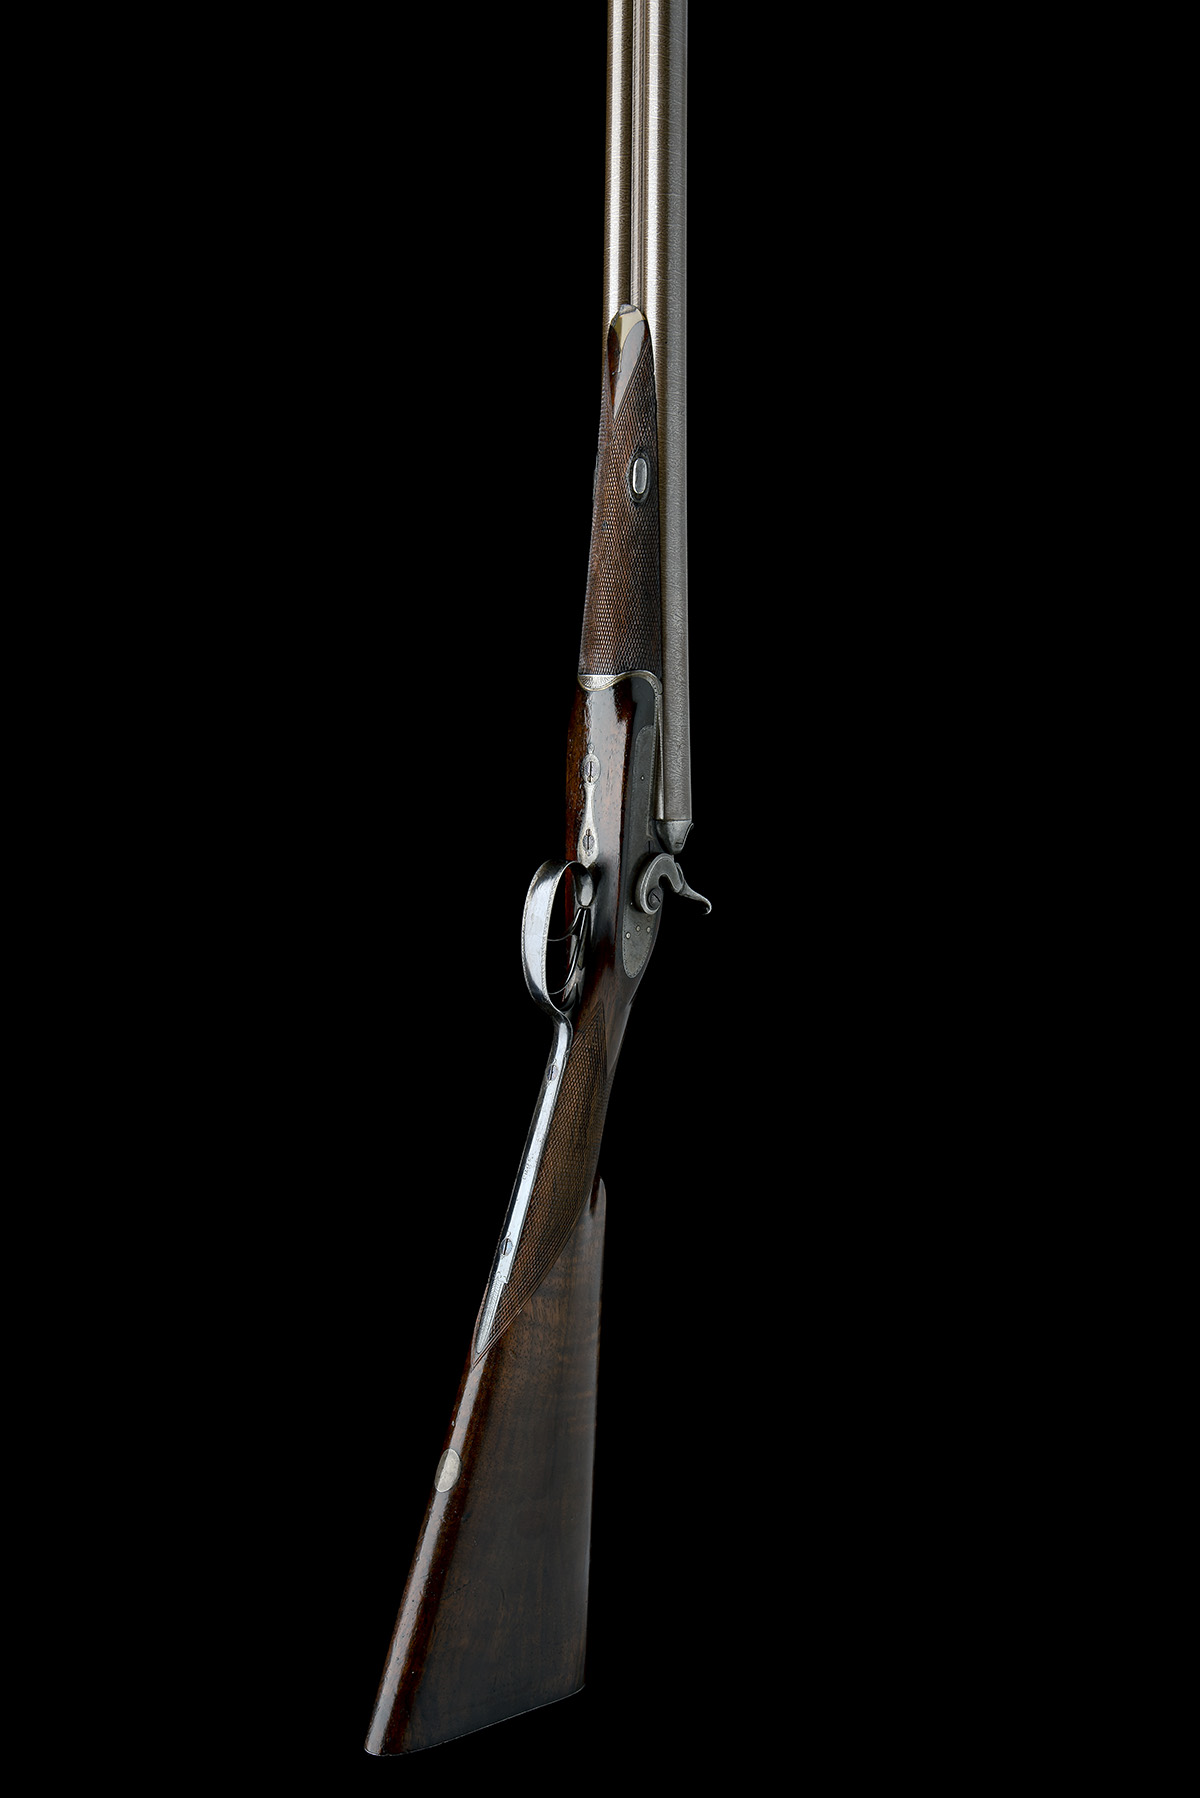 WILLIAM POWELL & SON A 12-BORE 1864 PATENT BAR-IN-WOOD LIFT-UP TOPLEVER ROTATING SINGLE BOLT SNAP- - Image 6 of 8